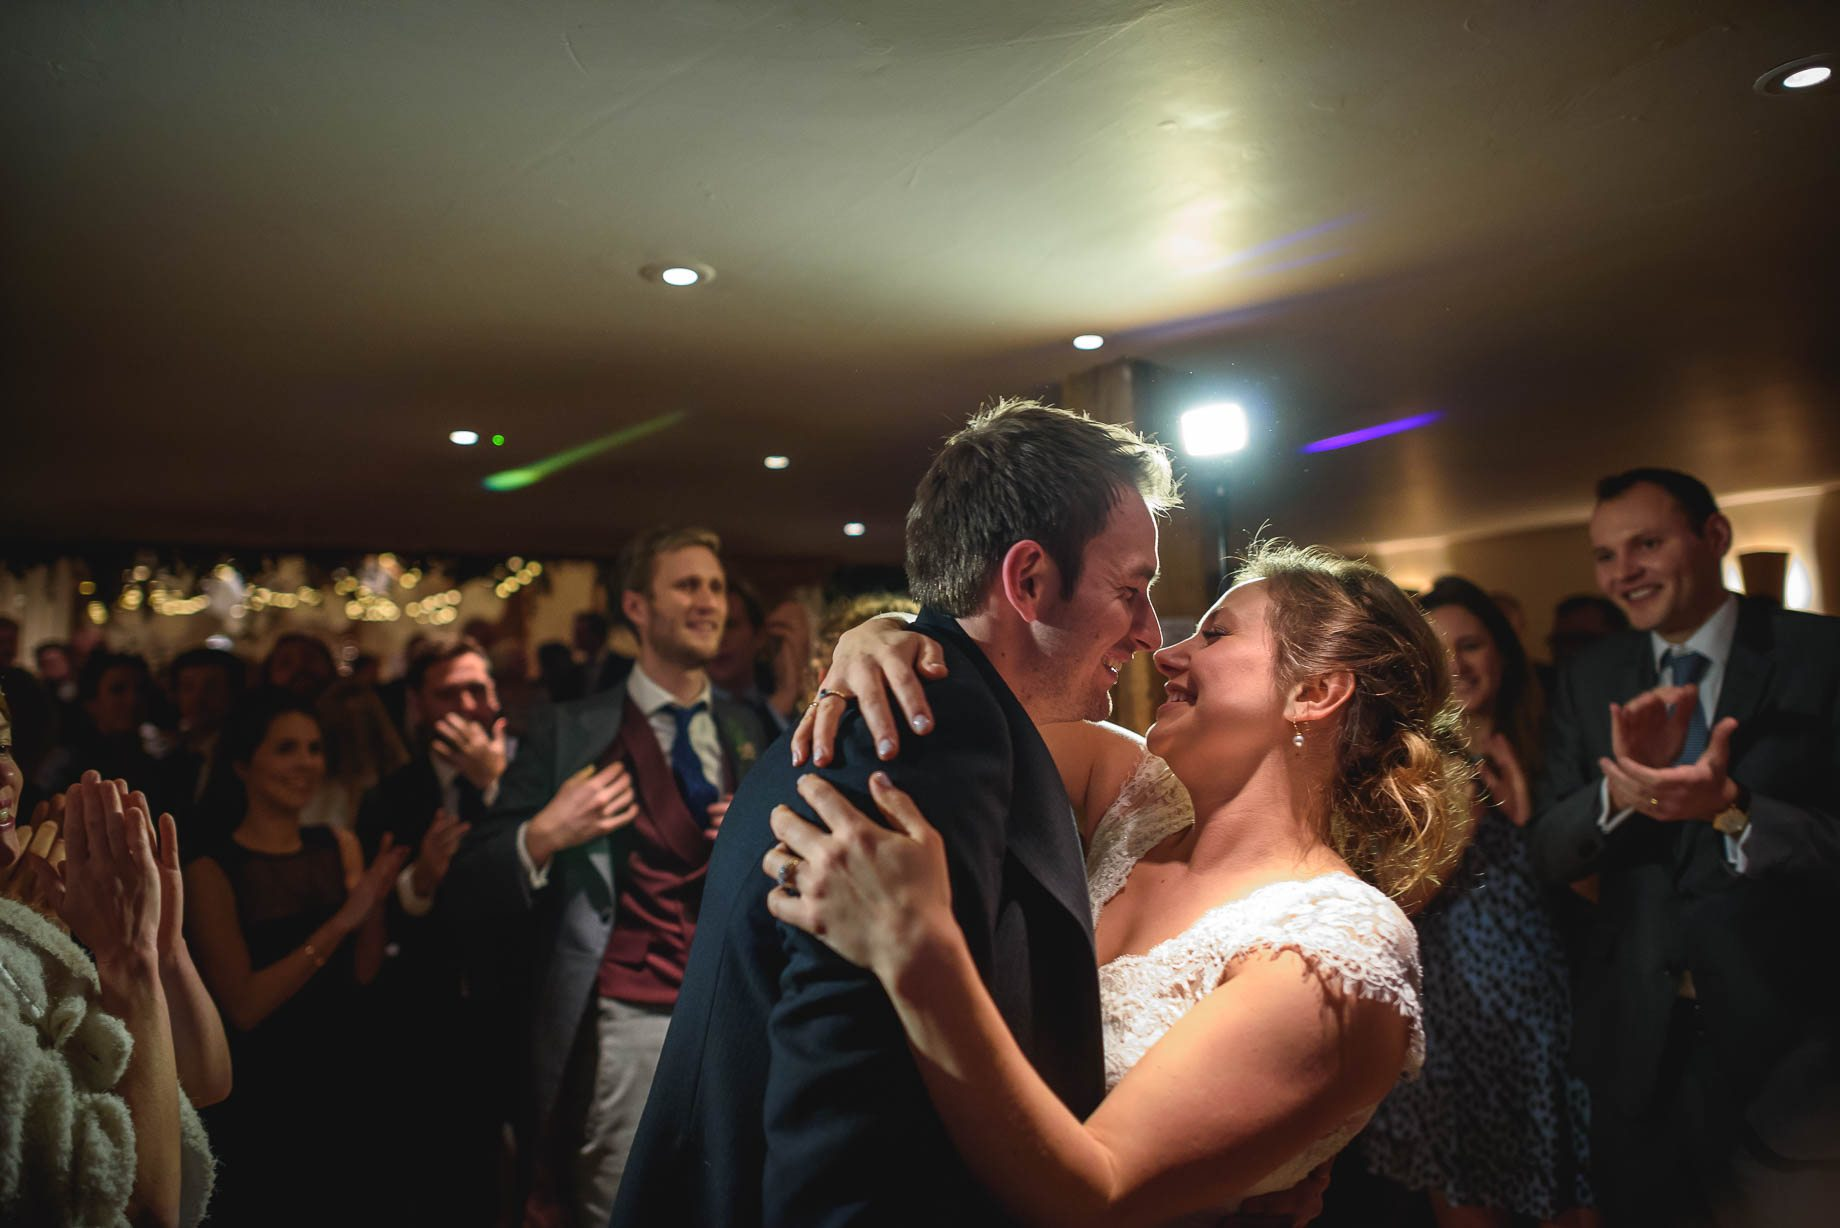 Bury Court Barn wedding photography - Ashley and Henry by Guy Collier Photography (181 of 188)